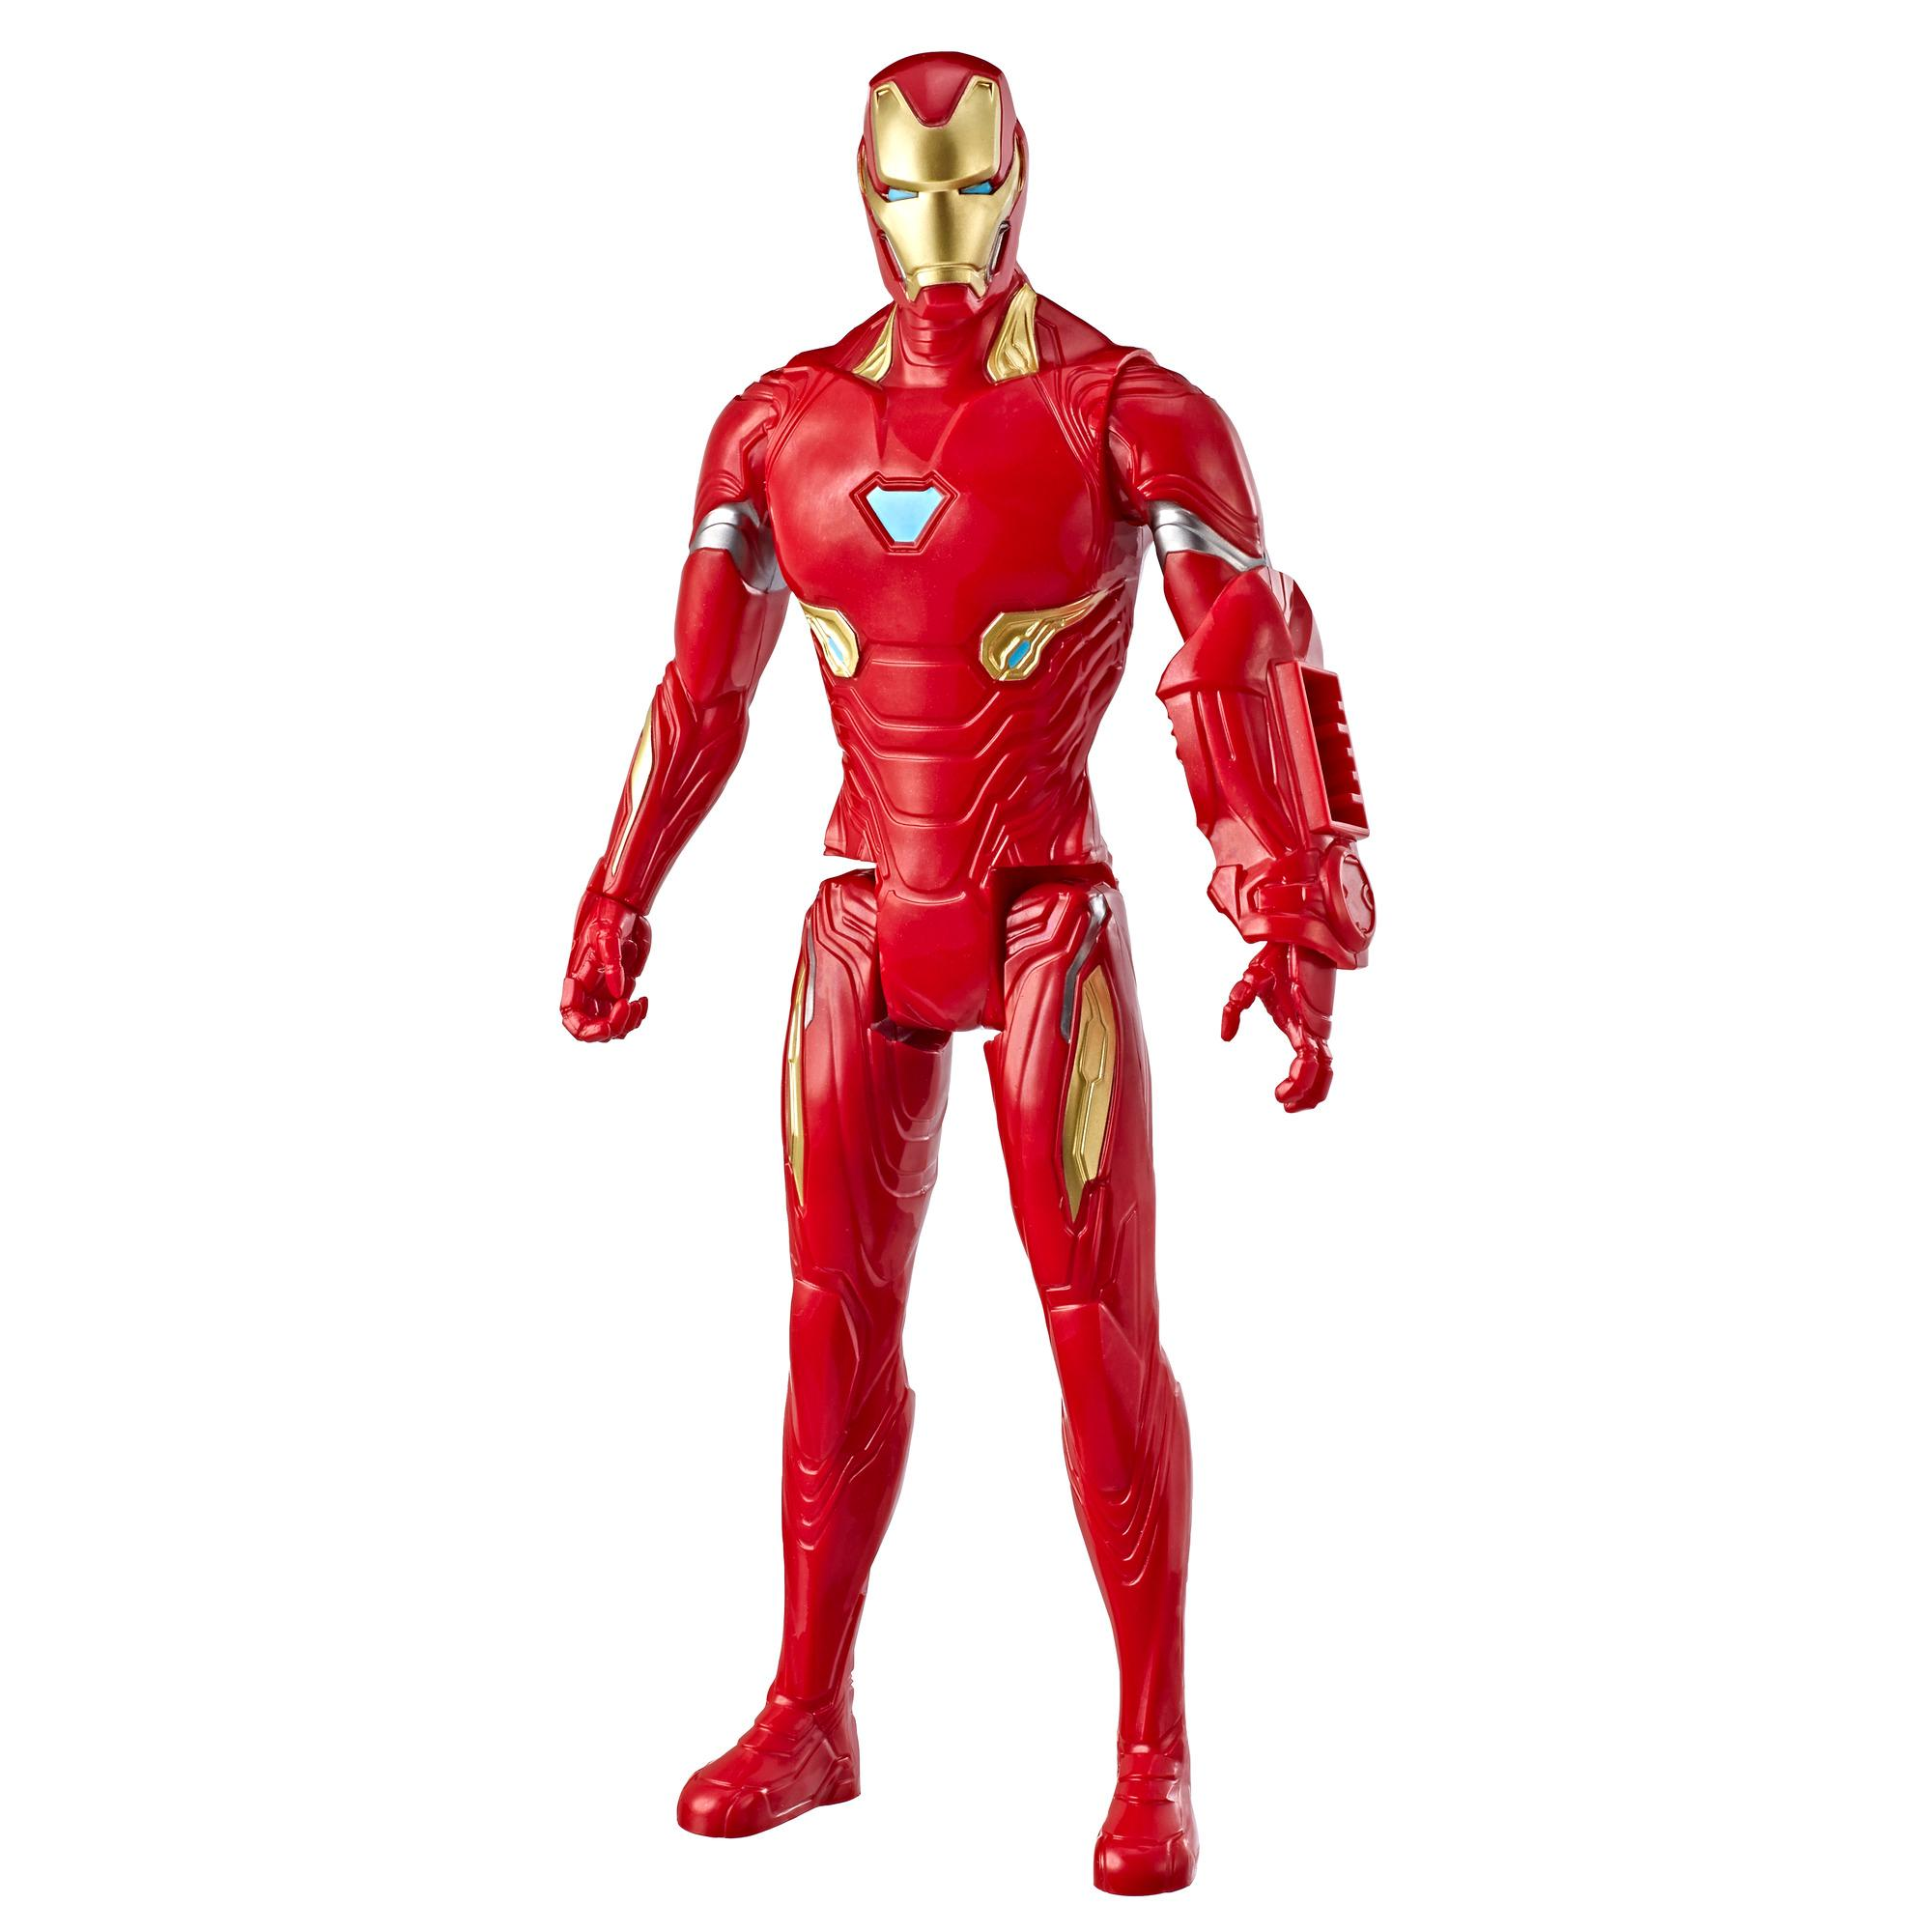 Marvel Avengers : Phase finale Titan Hero Series - Figurine jouet de super-héros Iron Man de 30 cm avec port Titan Hero Power FX